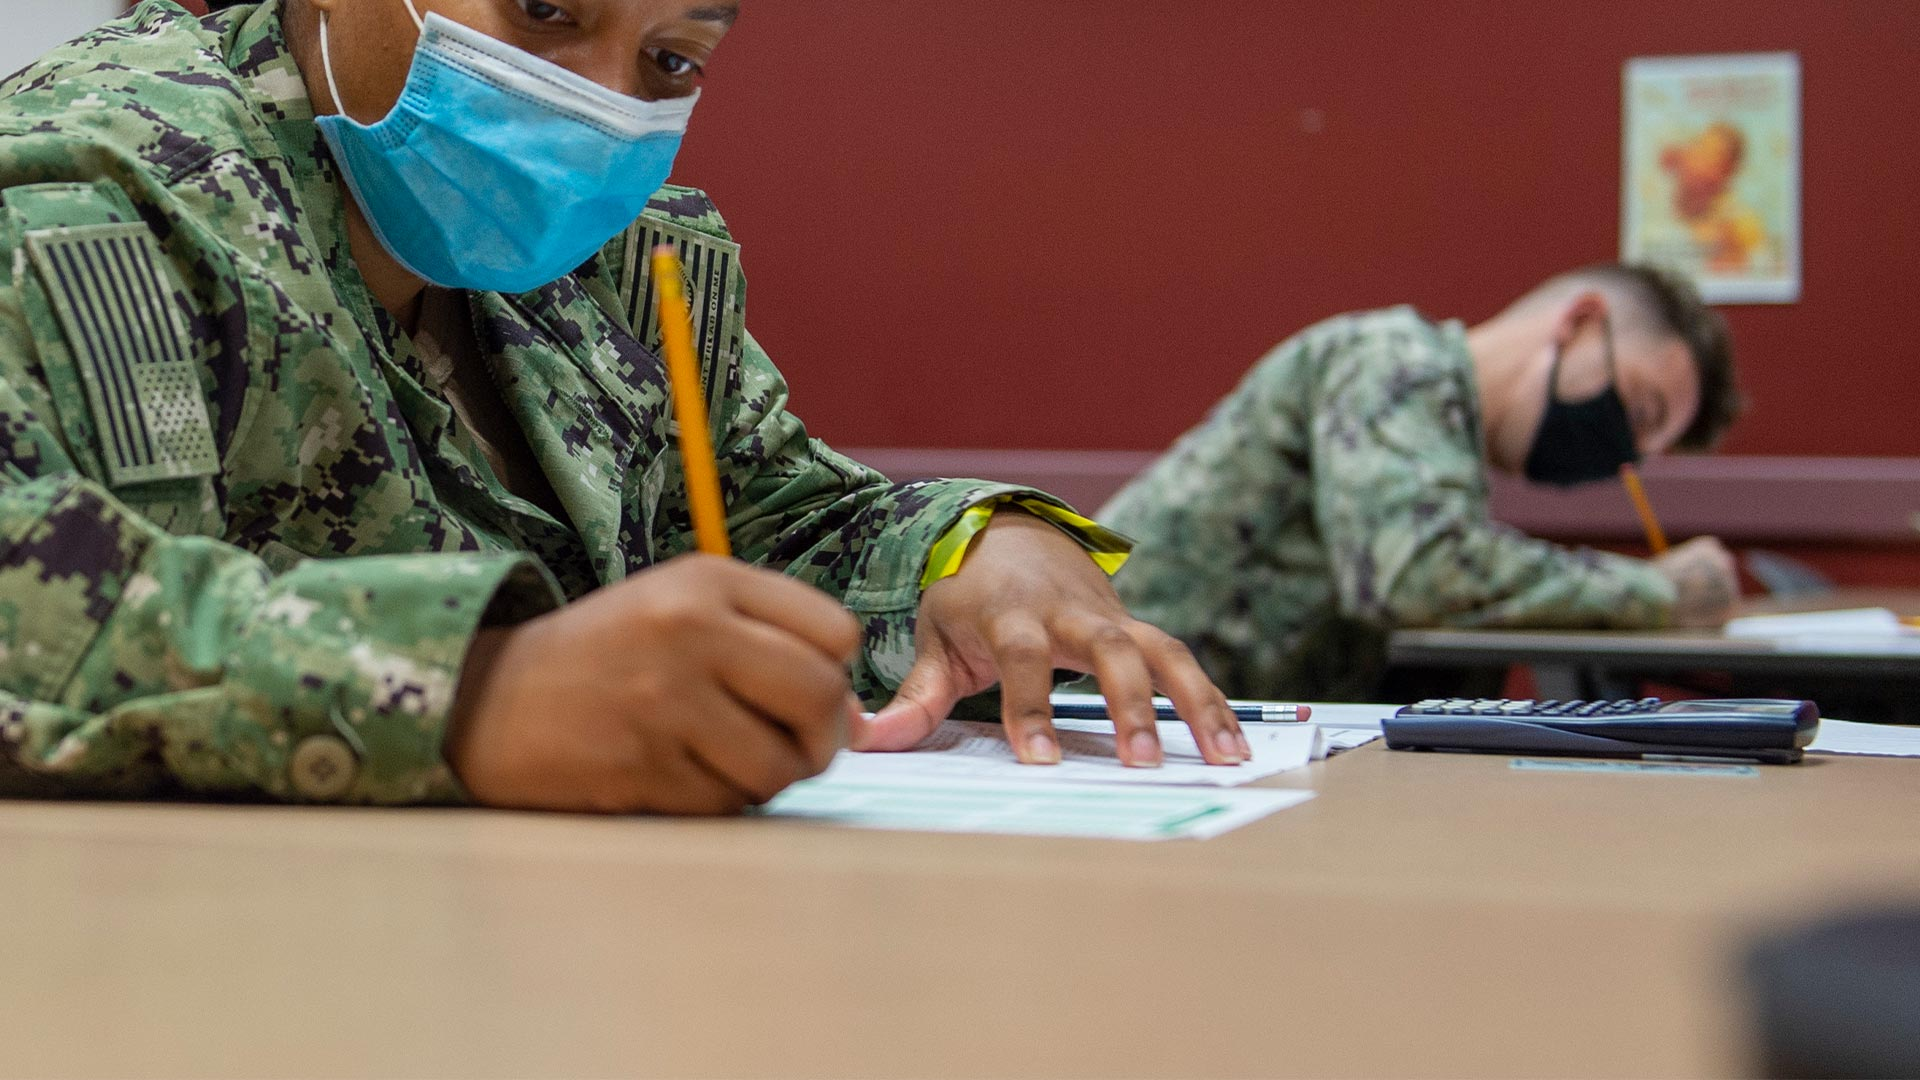 Navy officers testing in classroom